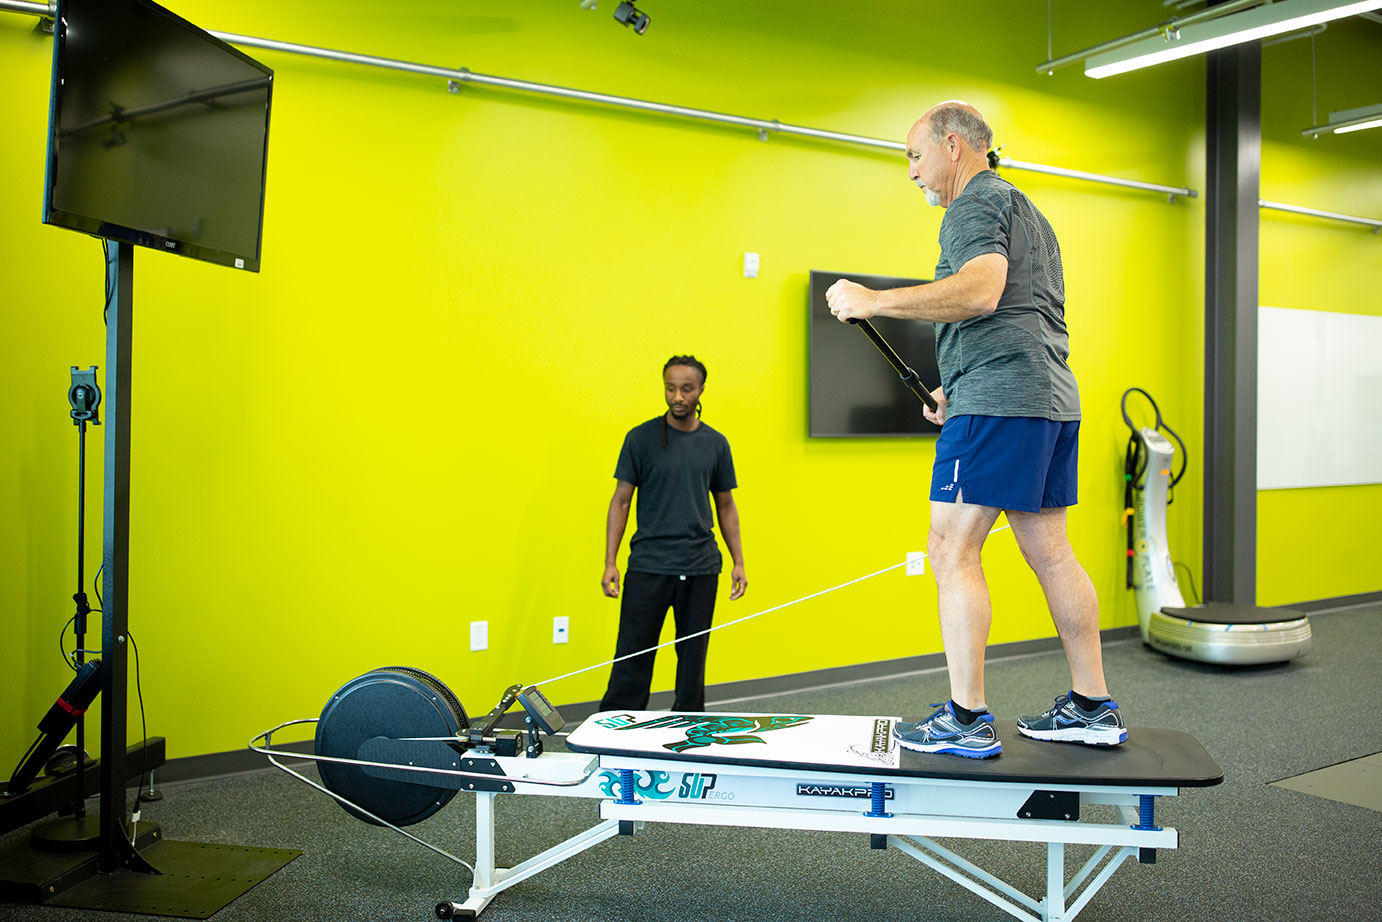 CLASP lecture on senior exercise includes visit to UHCL's new health institute